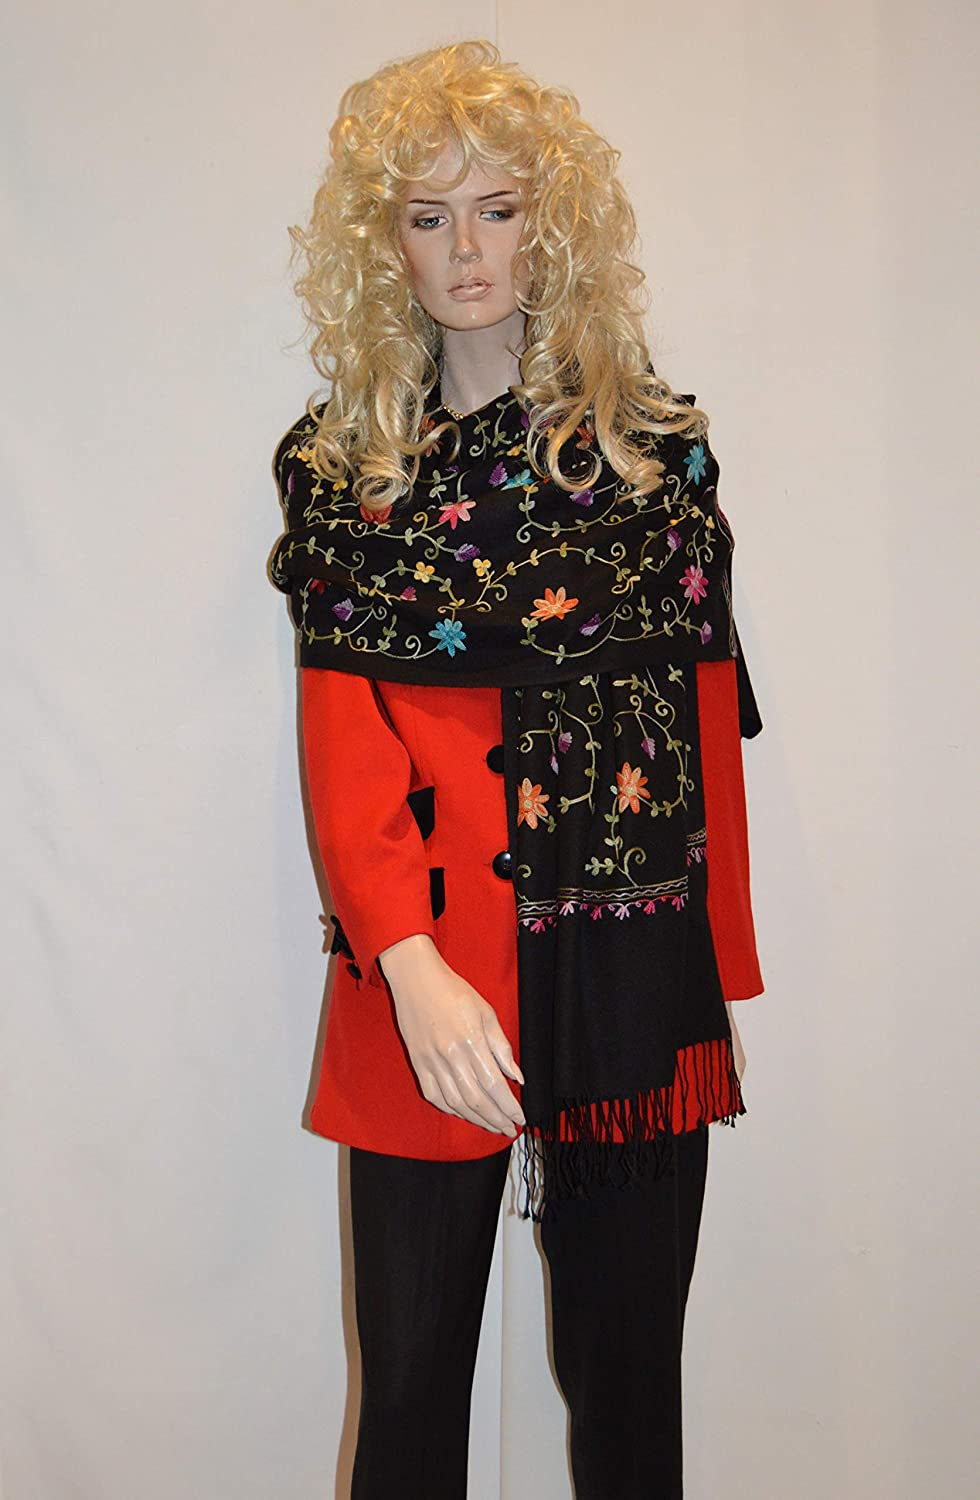 Cashmere Pashmina Group Scarf/Scarves/Shawl/Shawl with Crewel/Ari Embroidery Black